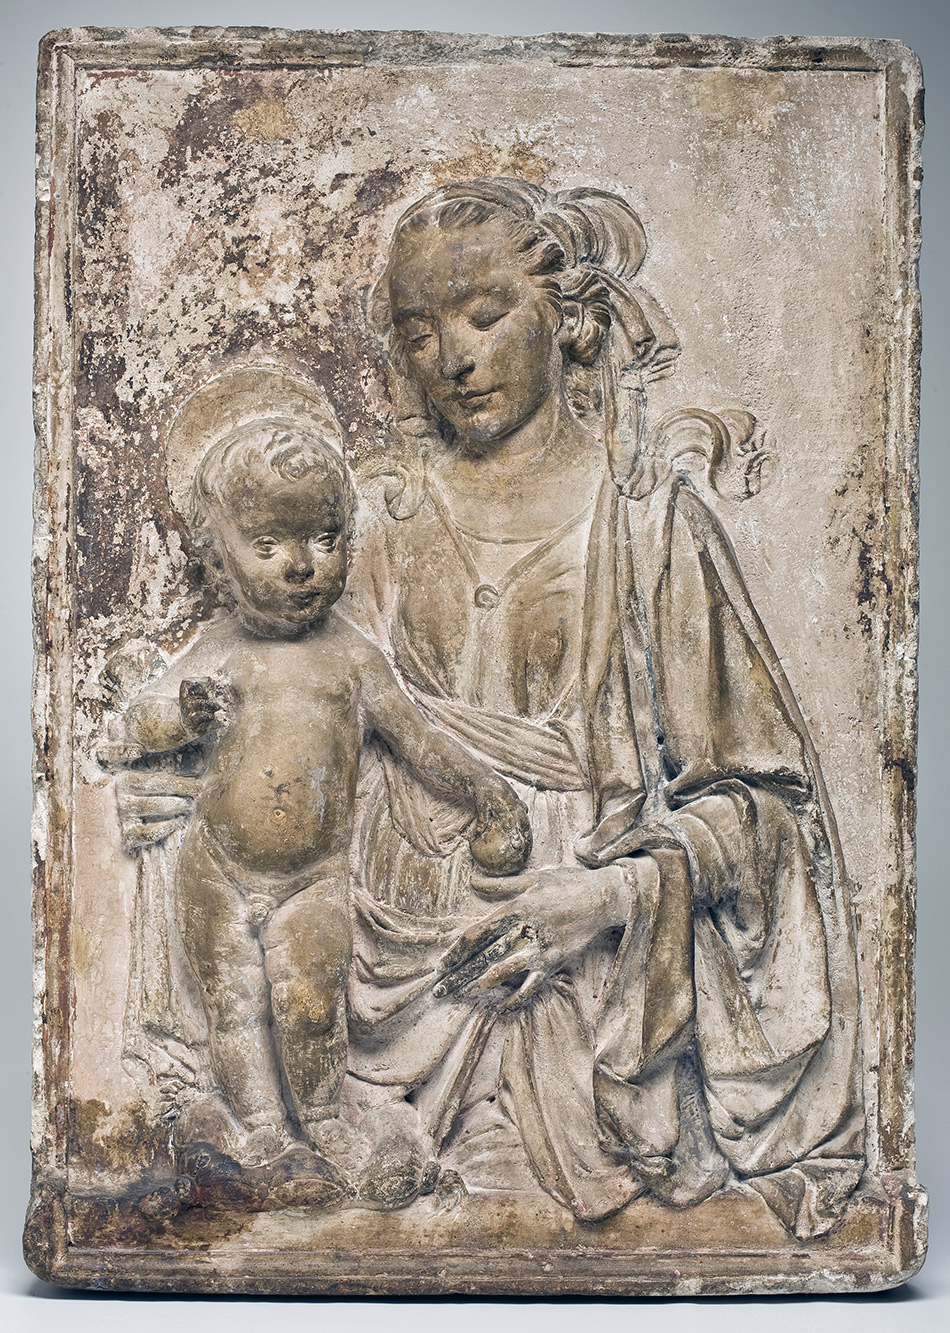 ALM289705 Madonna and Child, c.1470-80 (stucco or plaster) by Verrocchio, Andrea del (1435-88) (circle of); 84x61x10 cm; Allen Memorial Art Museum, Oberlin College, Ohio, USA; R.T. Miller, Jr. Fund; Italian,  out of copyright.